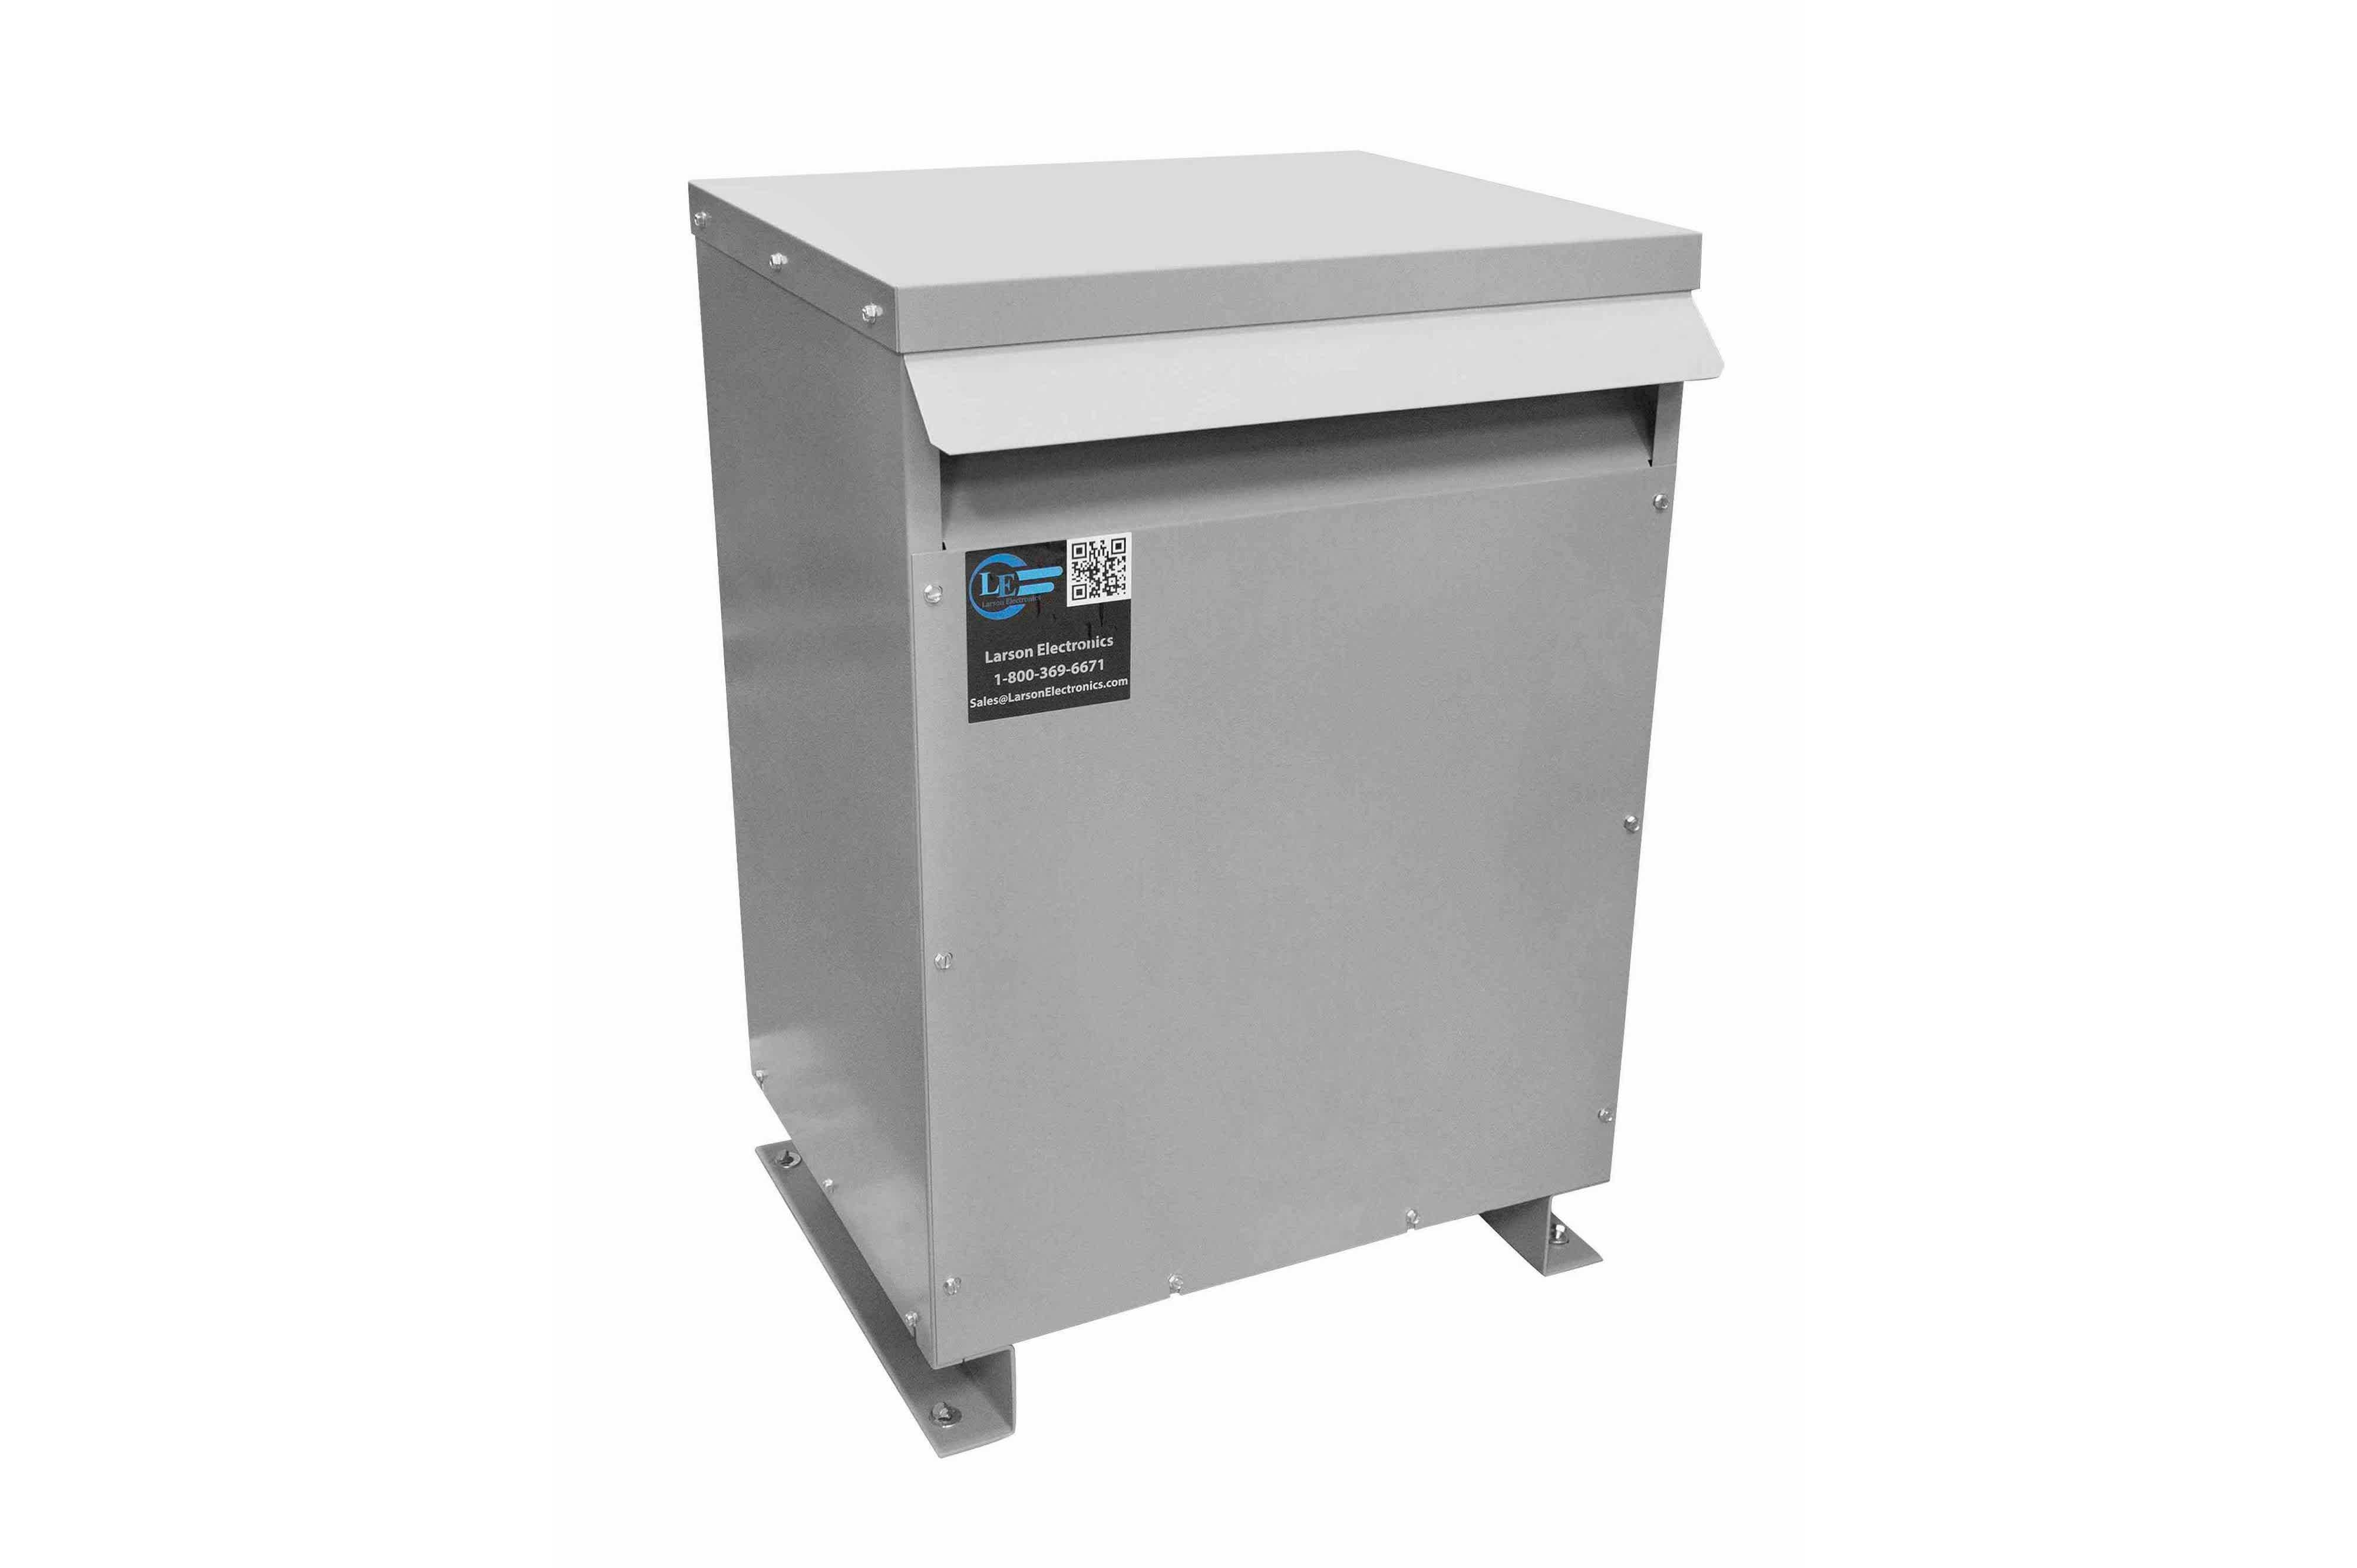 112.5 kVA 3PH Isolation Transformer, 575V Delta Primary, 240 Delta Secondary, N3R, Ventilated, 60 Hz